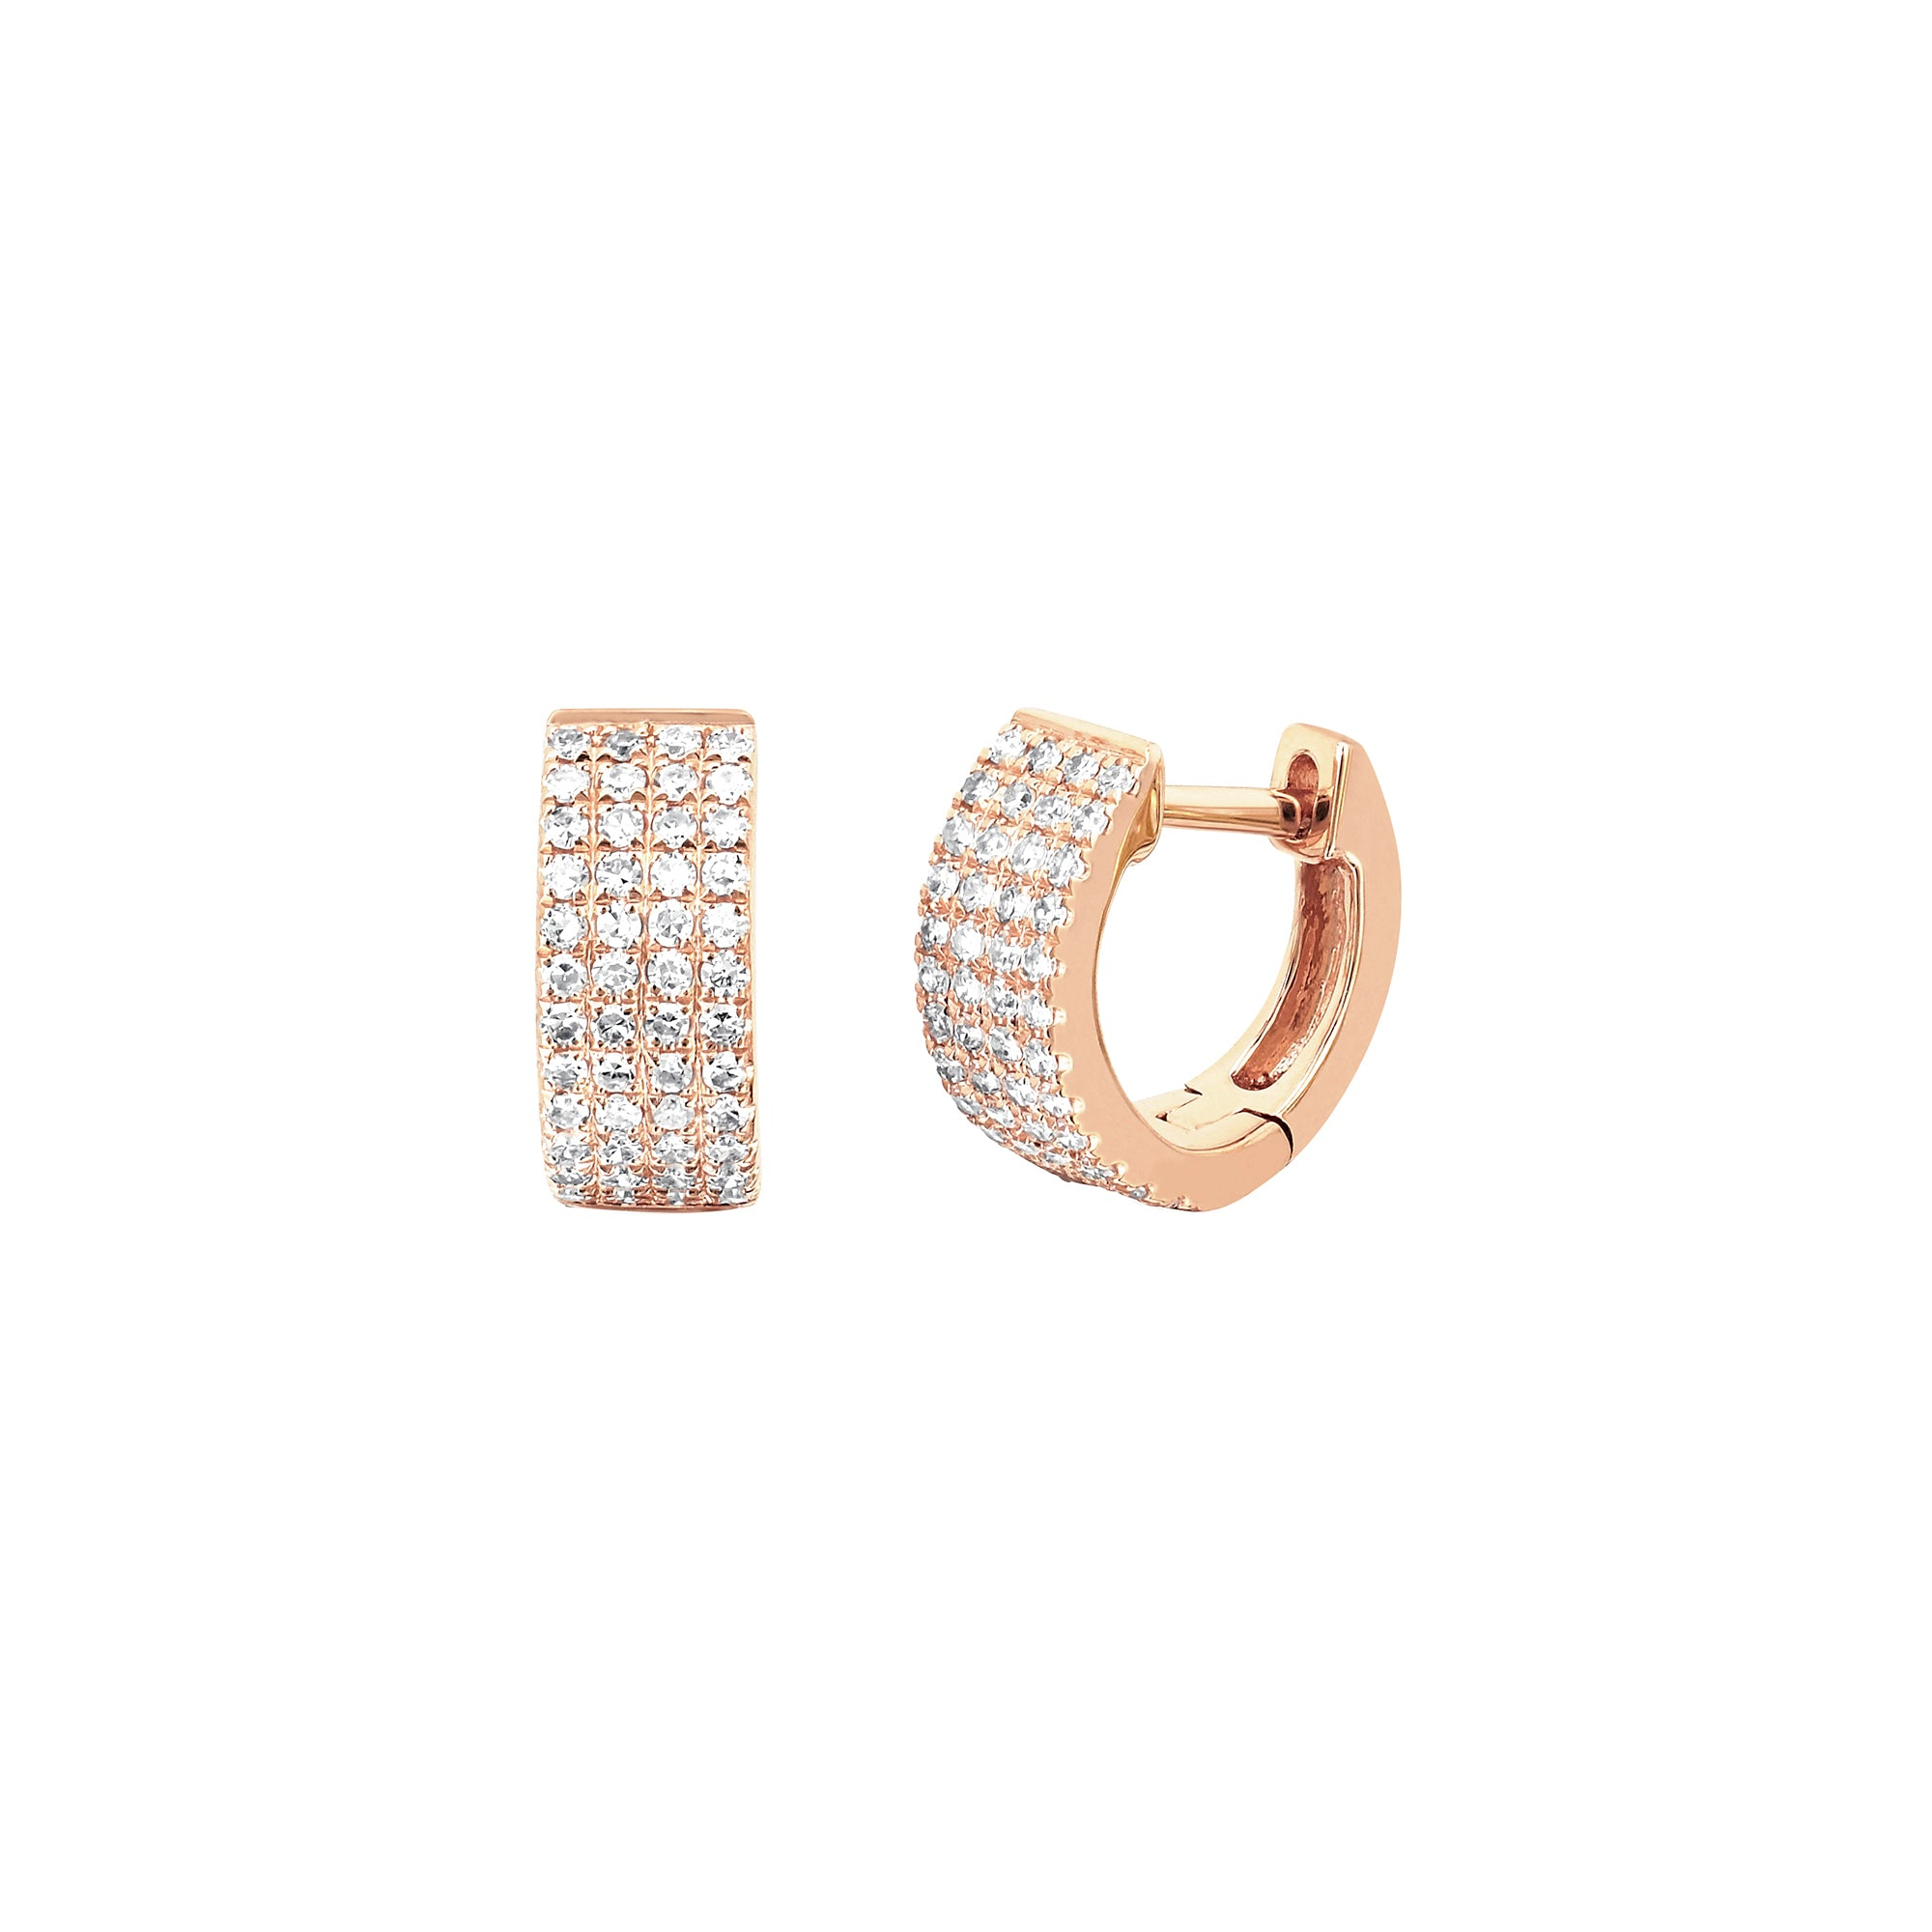 Jumbo Diamond Huggies - EF Collection - earrings | Broken English Jewelry